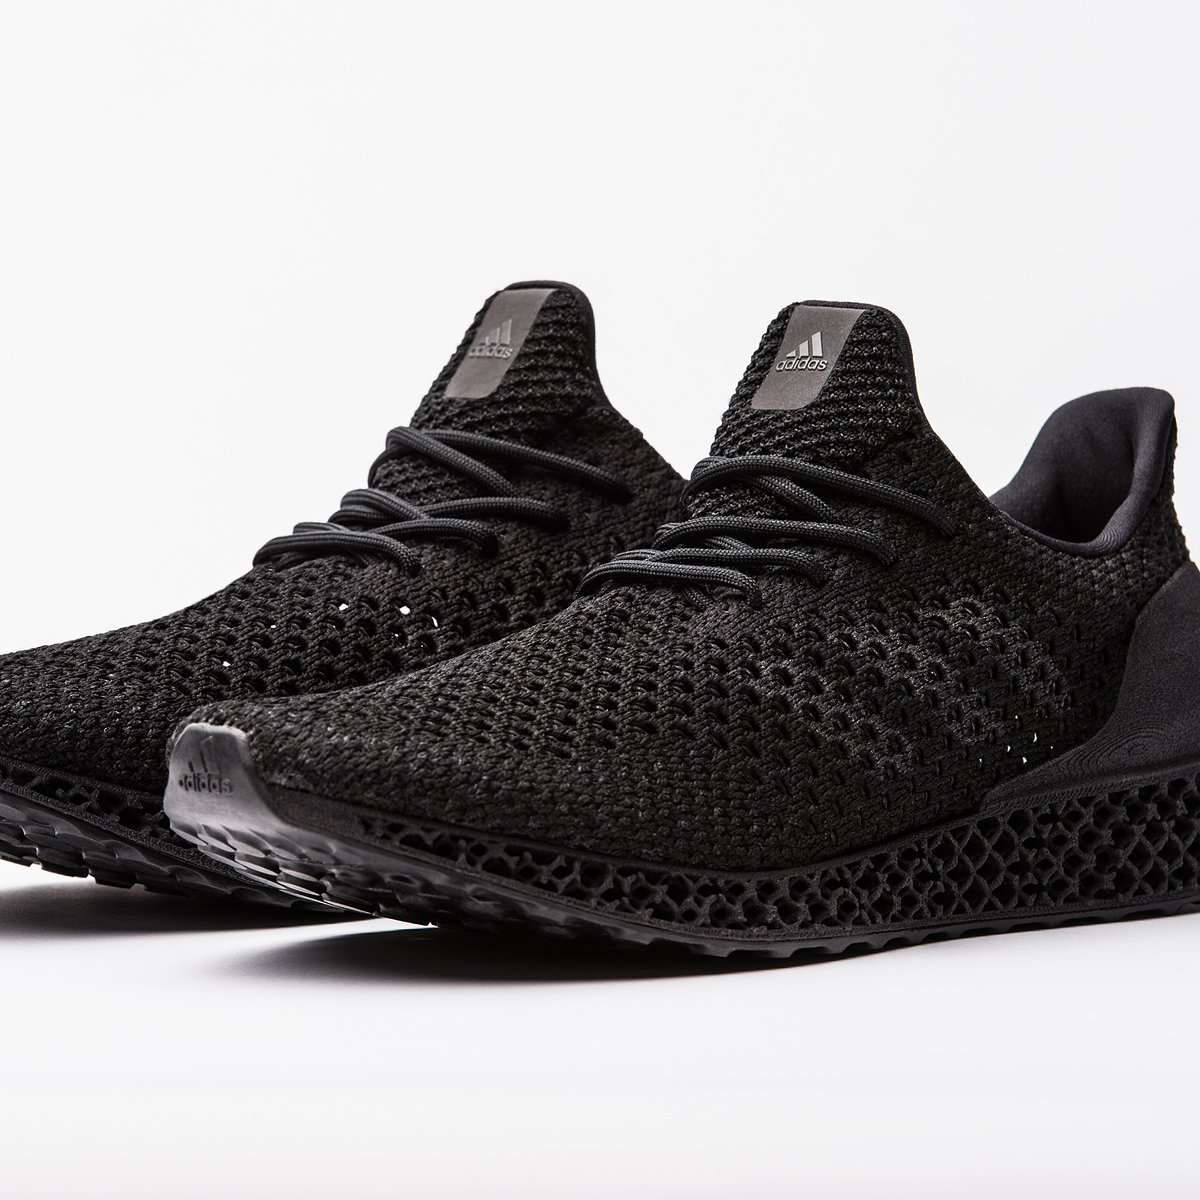 Adidas 3D Runner: First Commercial Drop Of 3D Printed